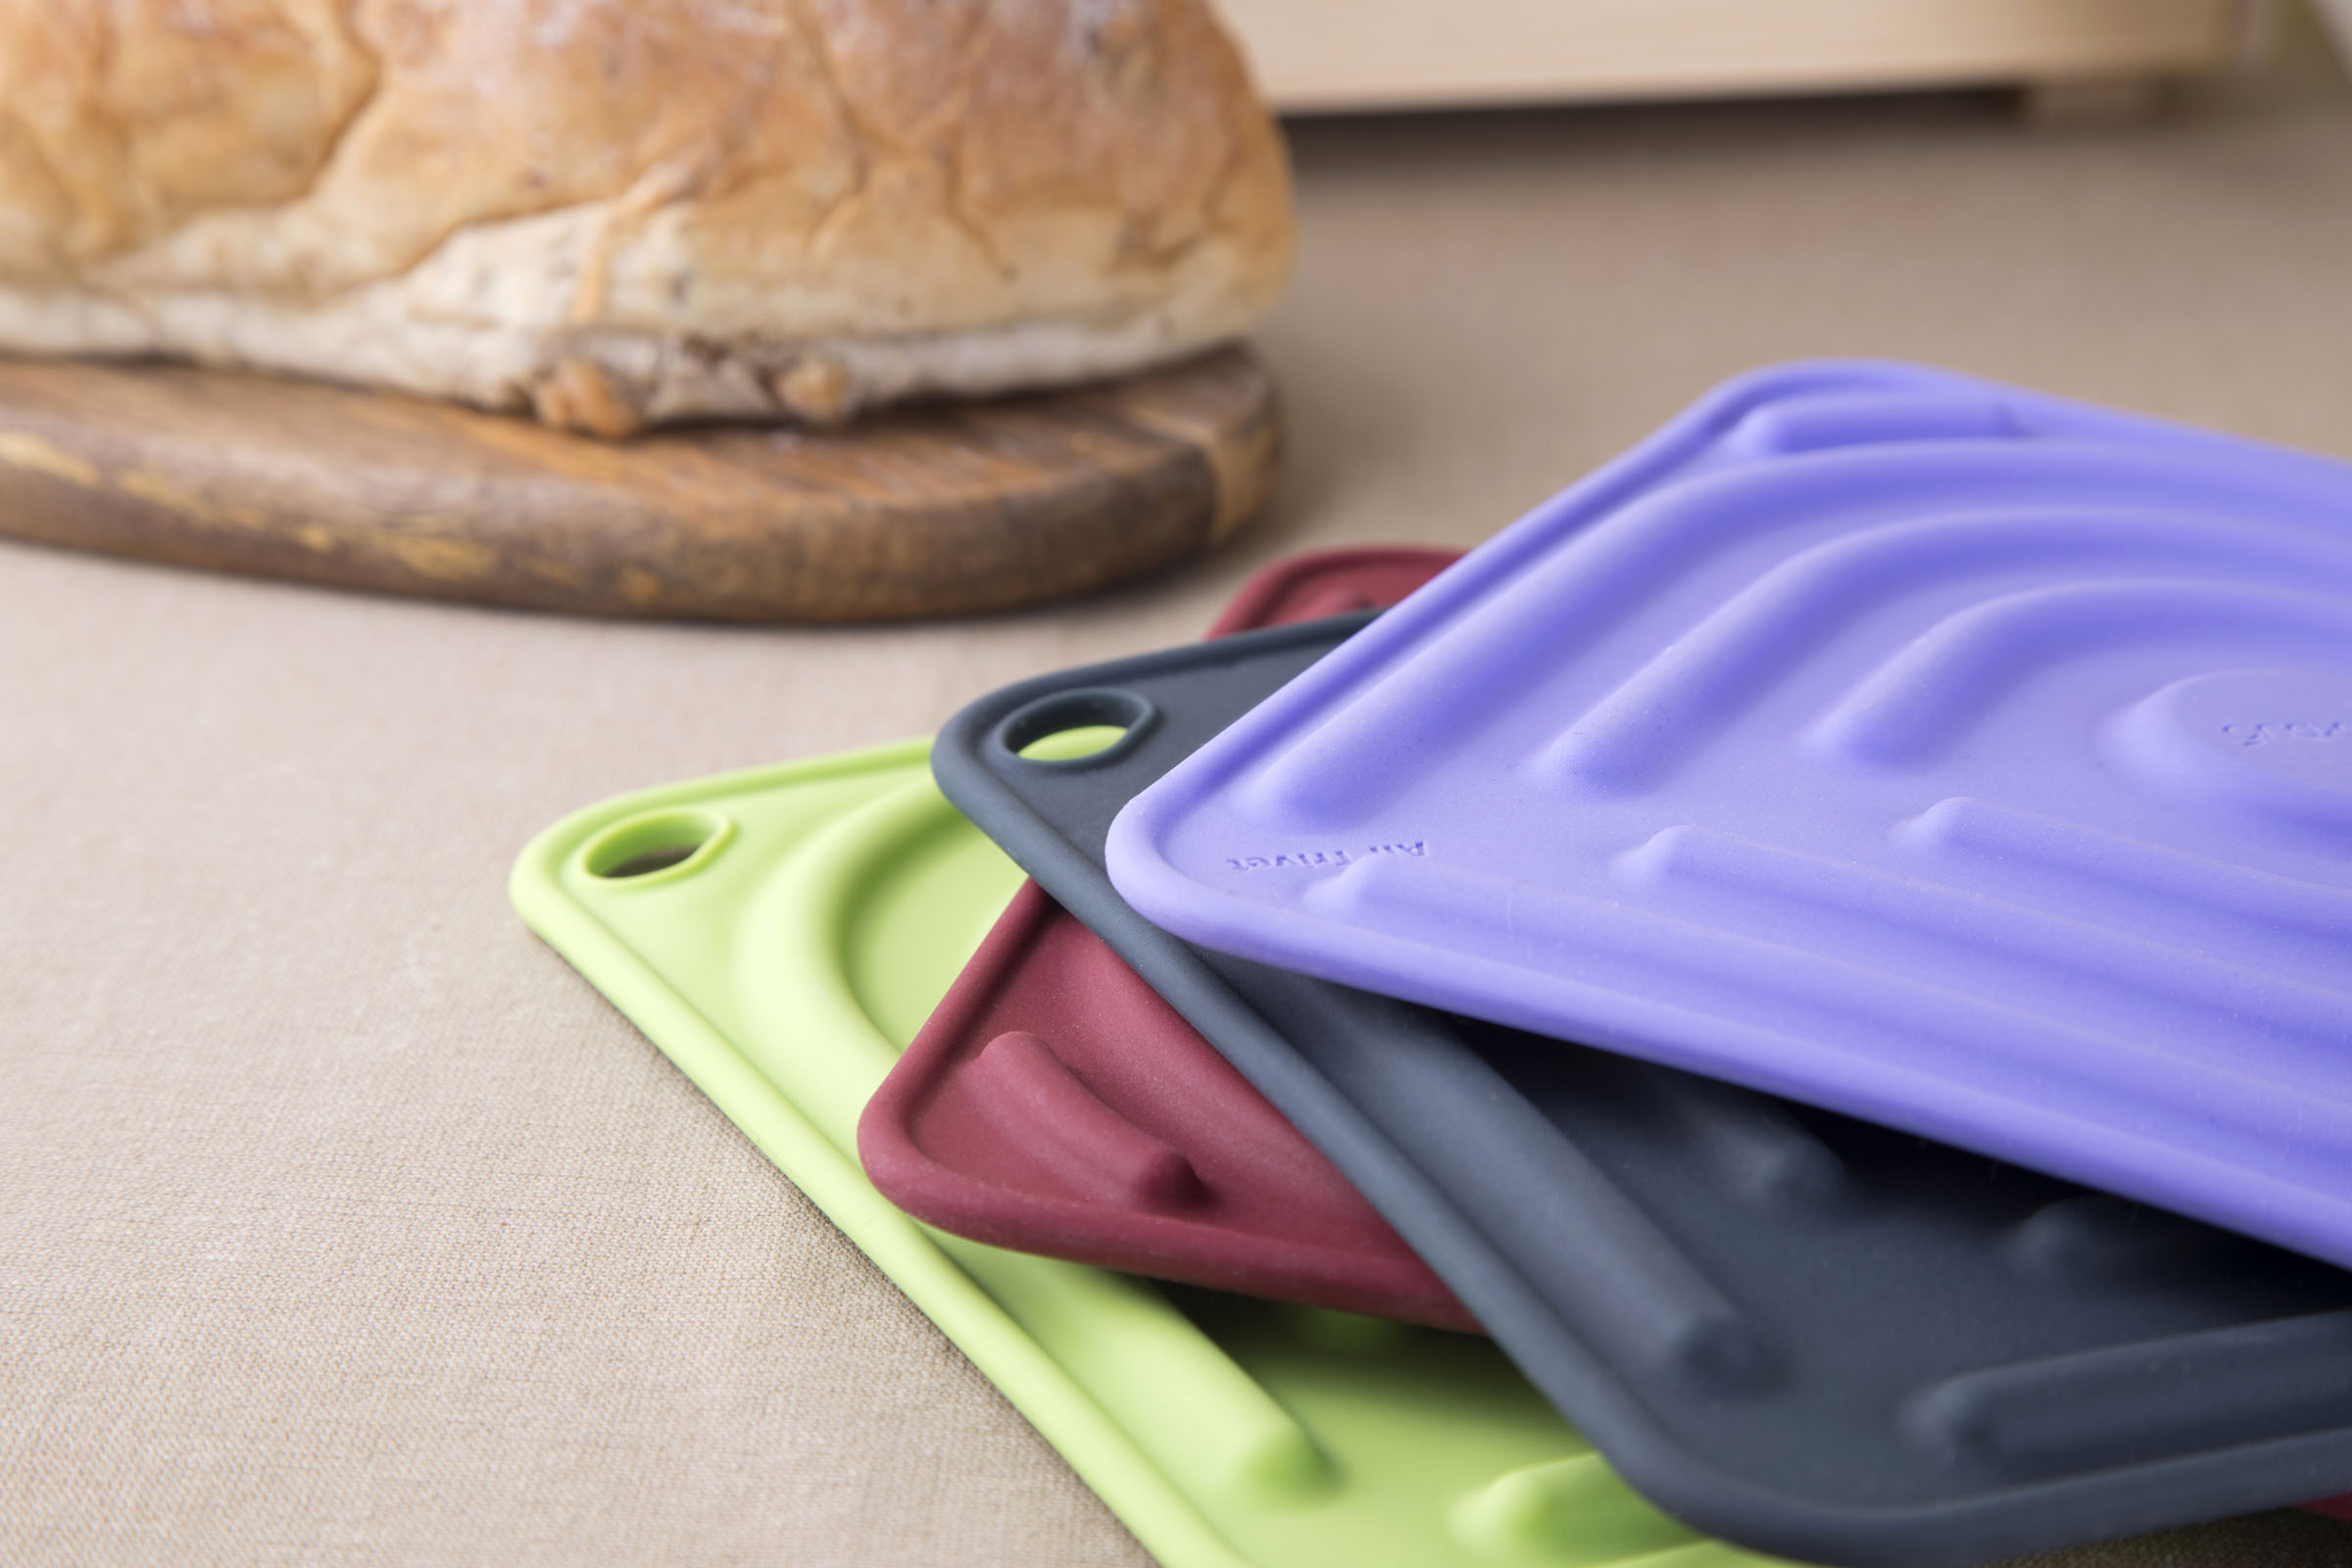 Air Trivet - Silicone trivet & pot holder. With integrated air tubes for extra heat protection and cushioning.